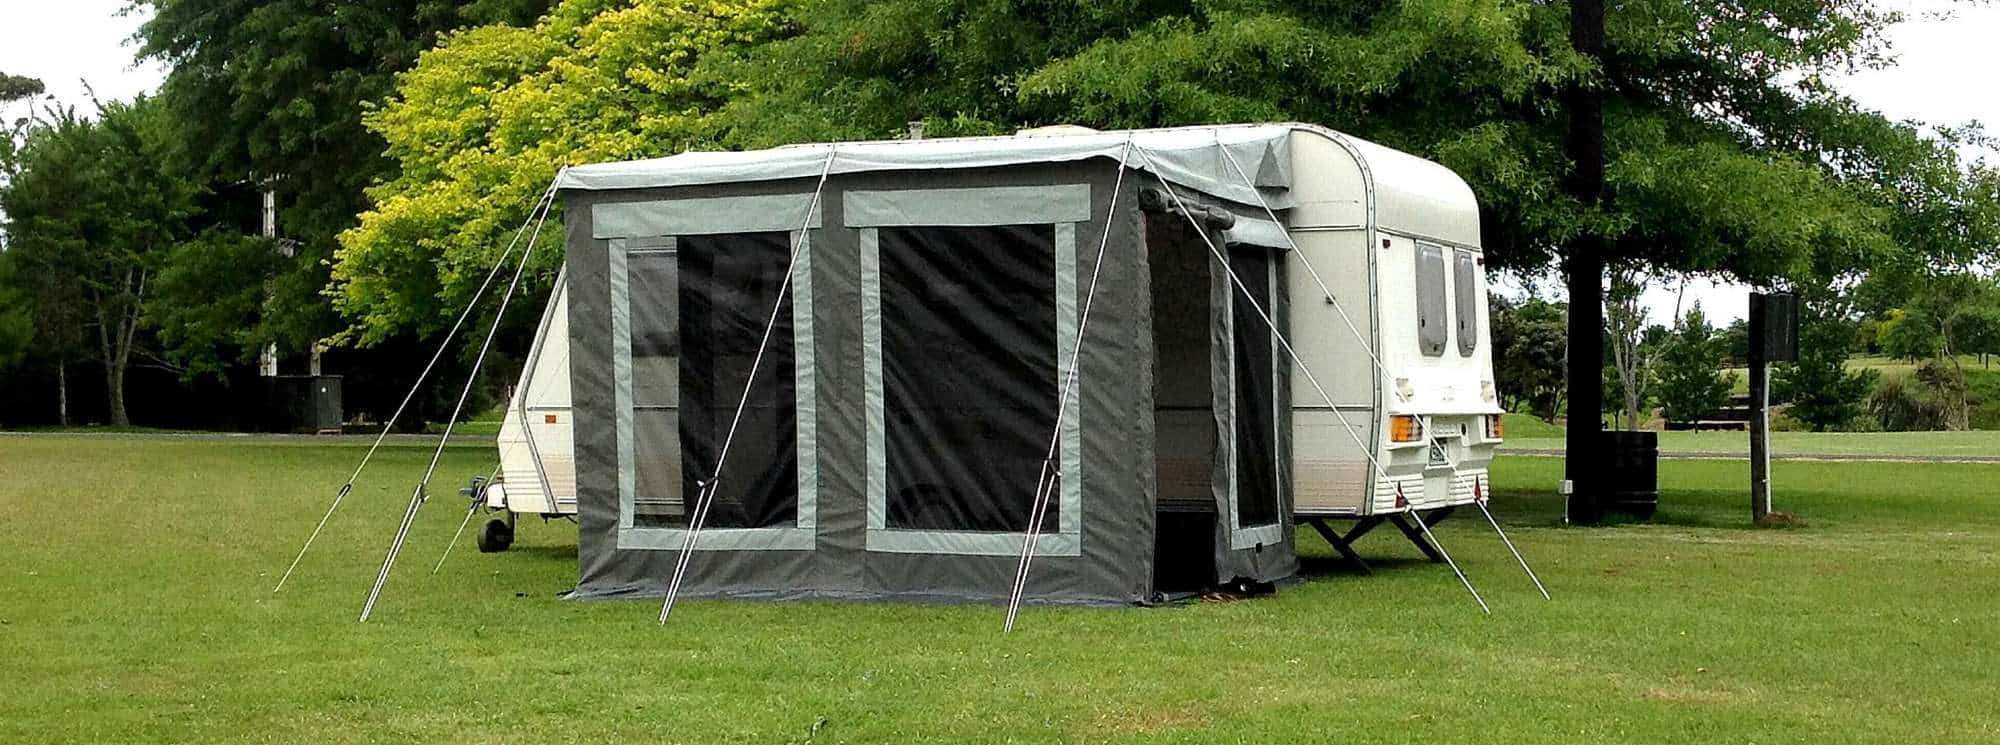 Our very versatile universal awning room for nz and eu caravans by intenze.co.nz